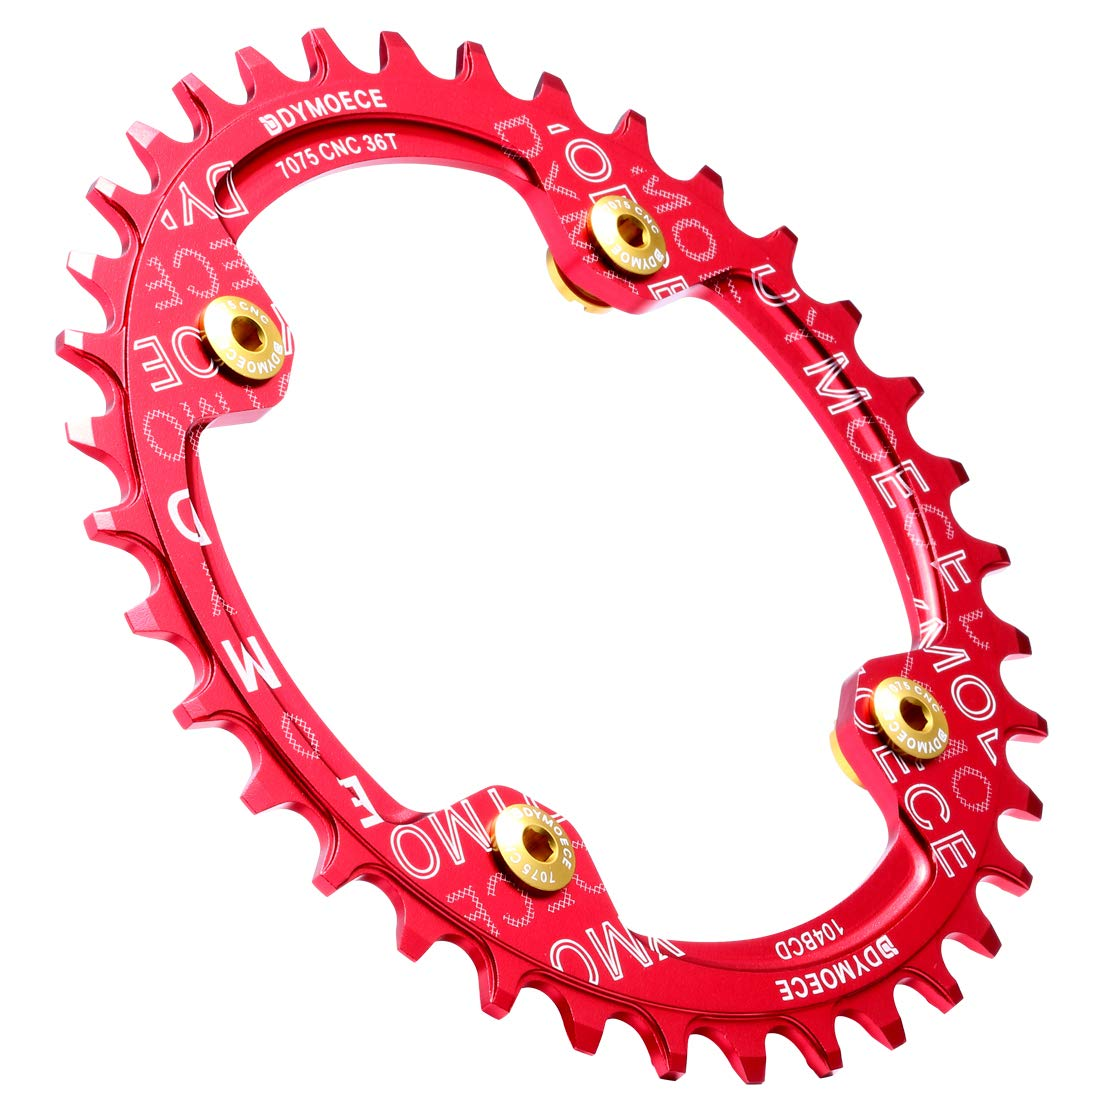 Dymoece 7075 Aluminum Alloy Double Chainring Bolts for Road MTB Bicycle M8 Crankset